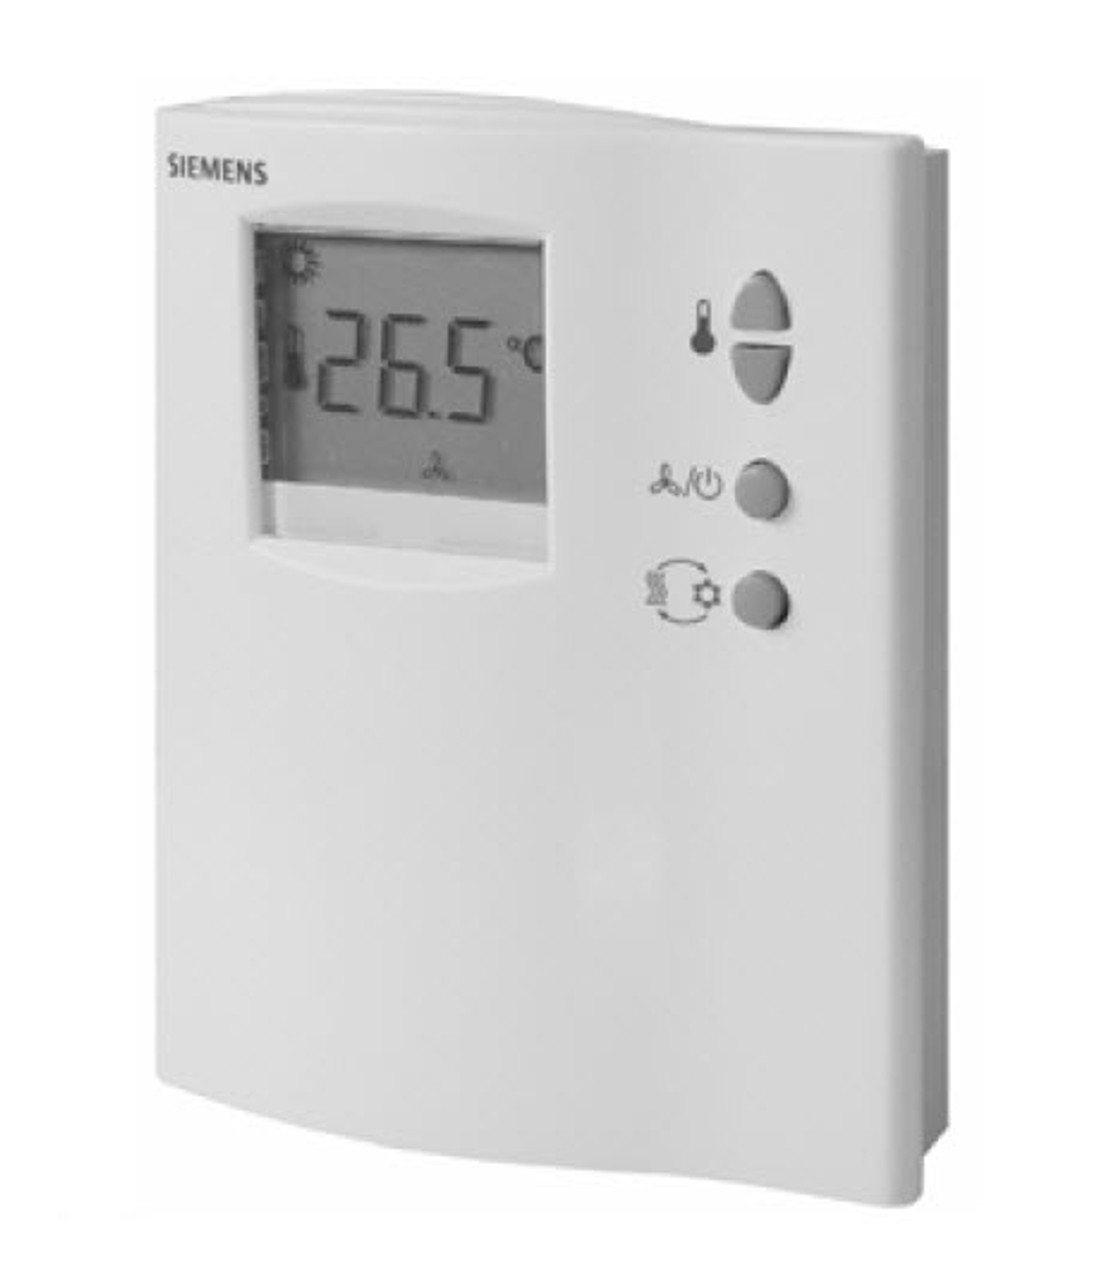 Siemens RDF110.2 Room thermostat for 2-pipe fan coils